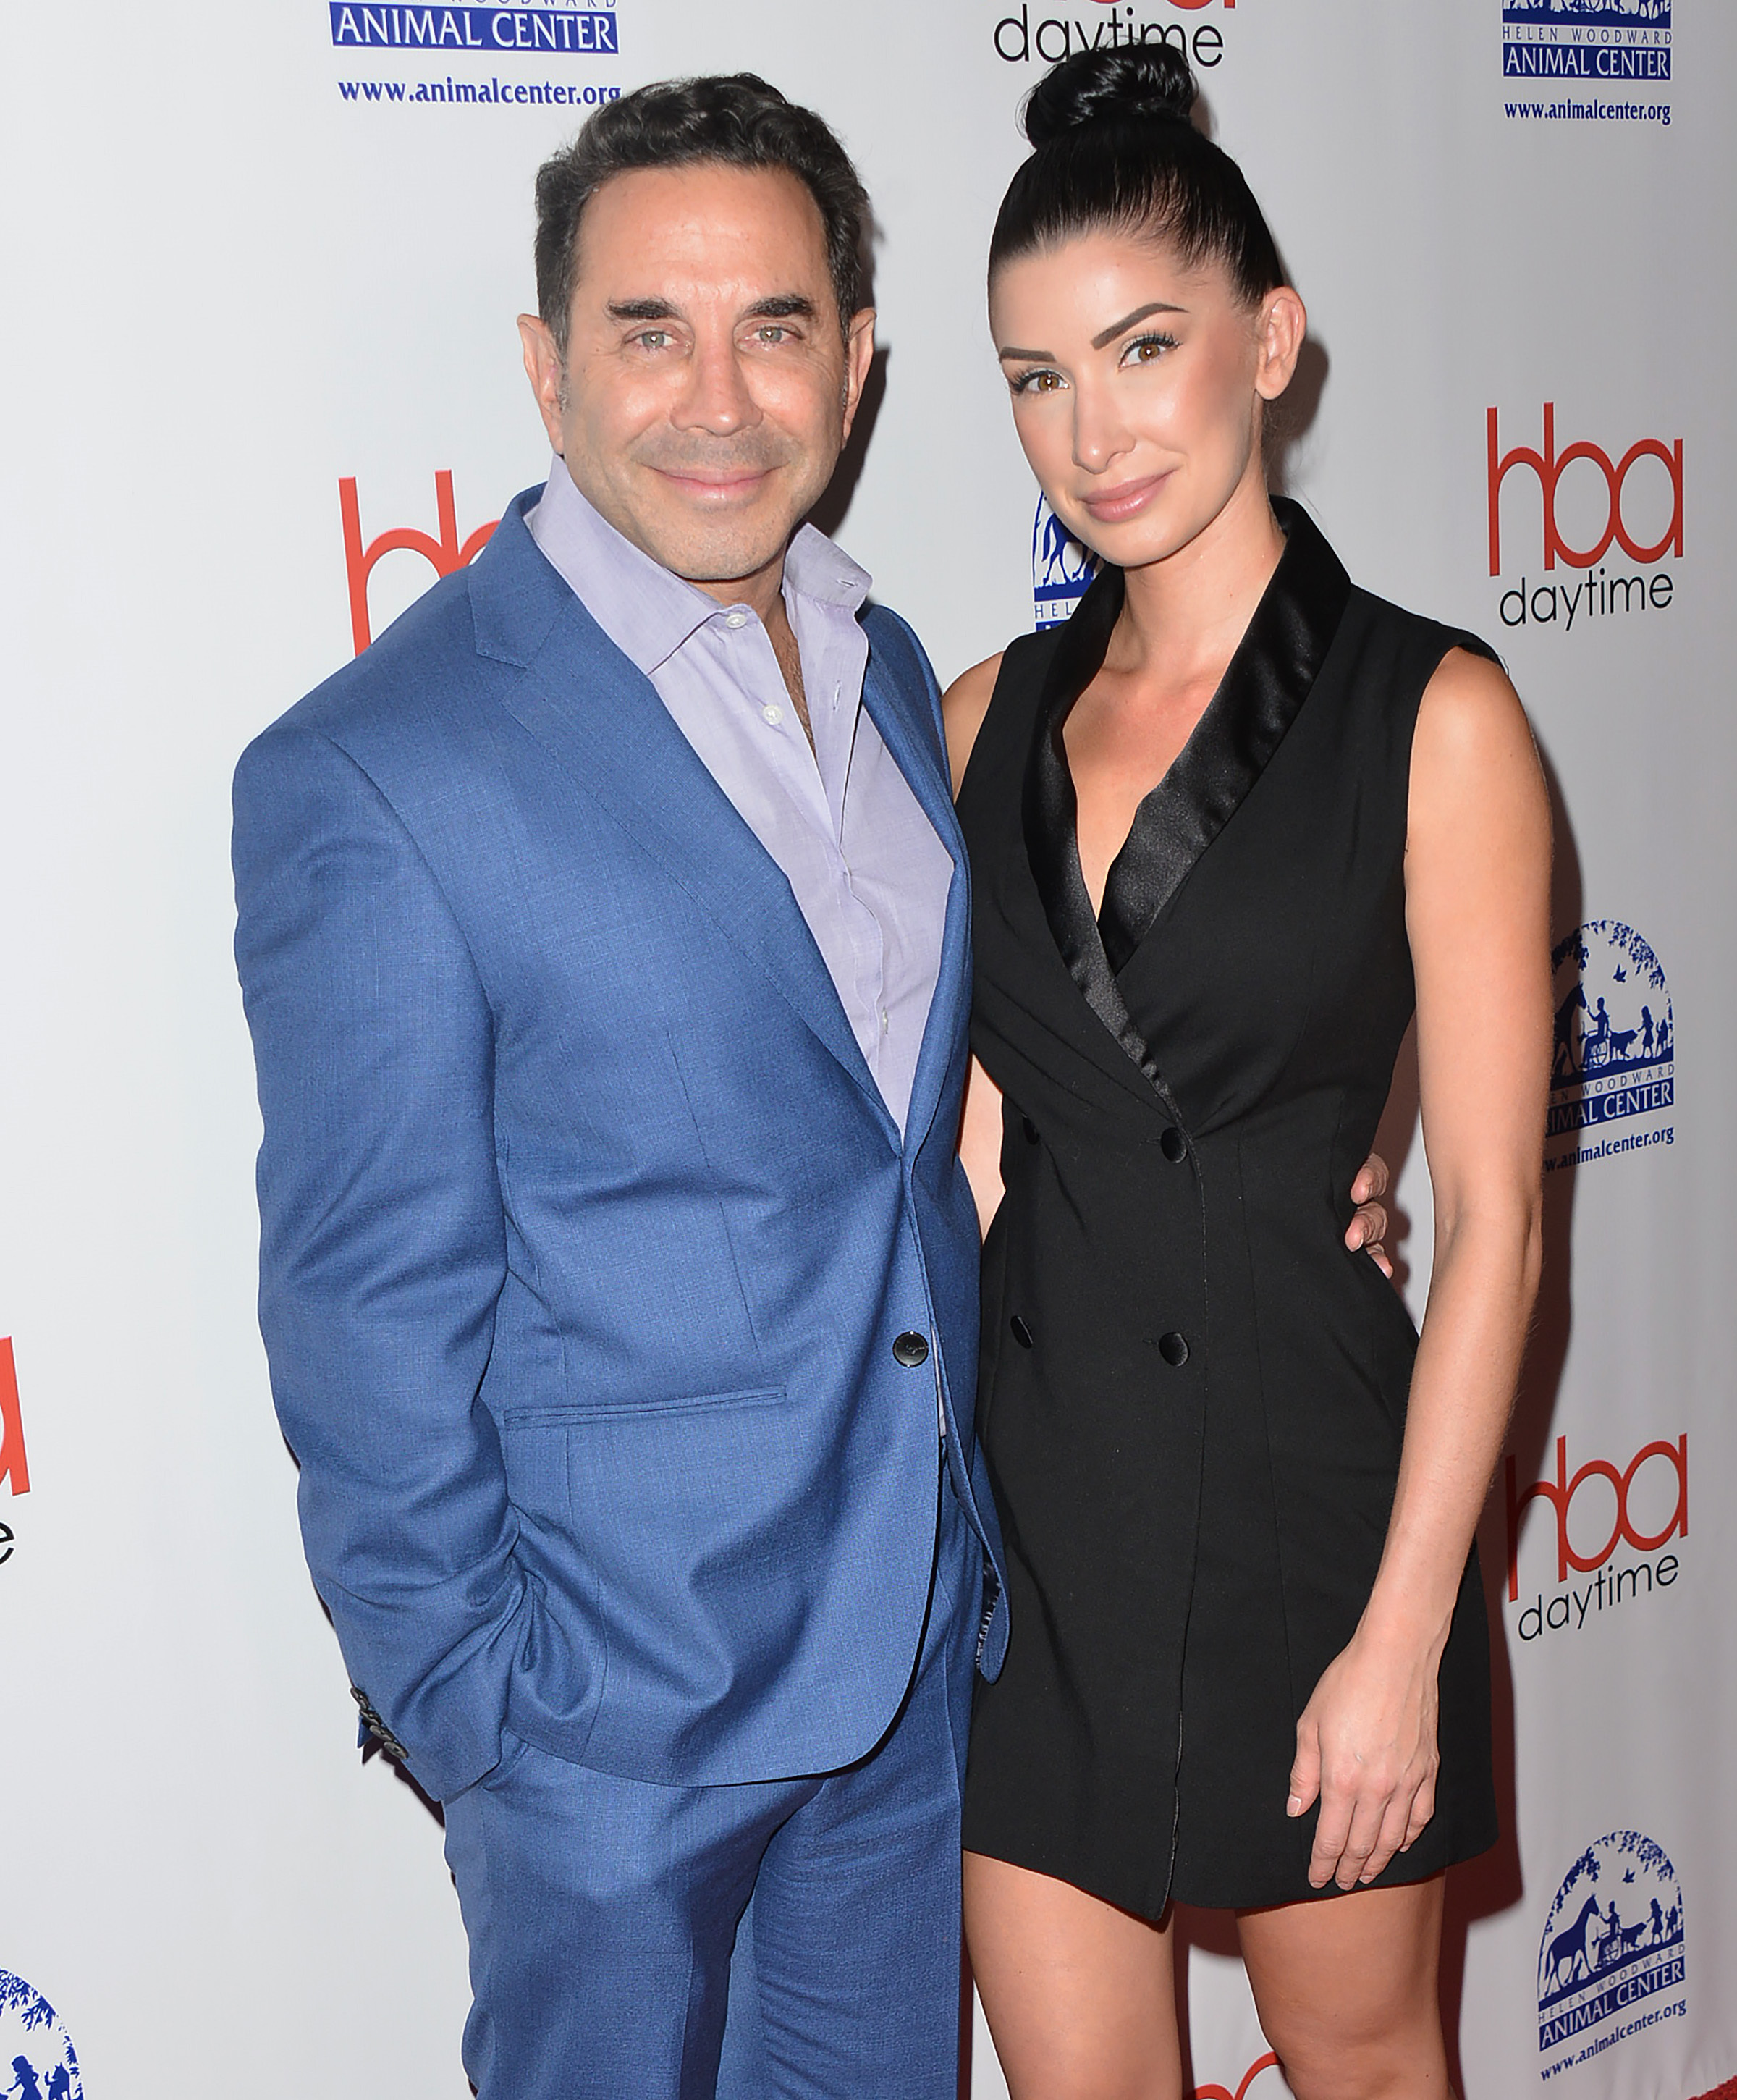 Paul Nassif, Girlfriend Brittany Pattakos Engaged Proposed